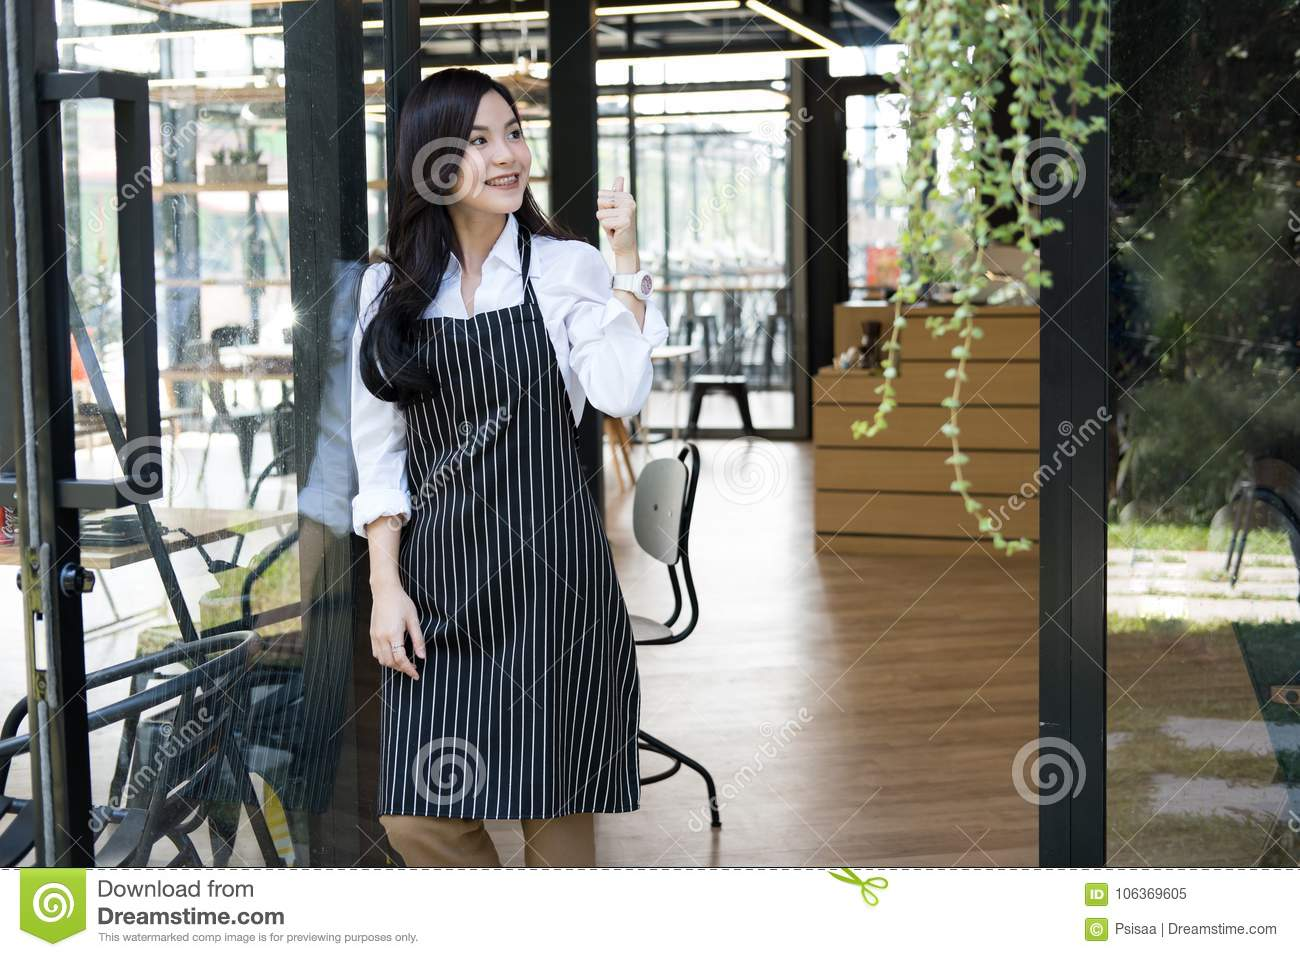 small business owner standing at coffee shop. female barista wearing apron smiling at cafe. food service, restaurant concept.